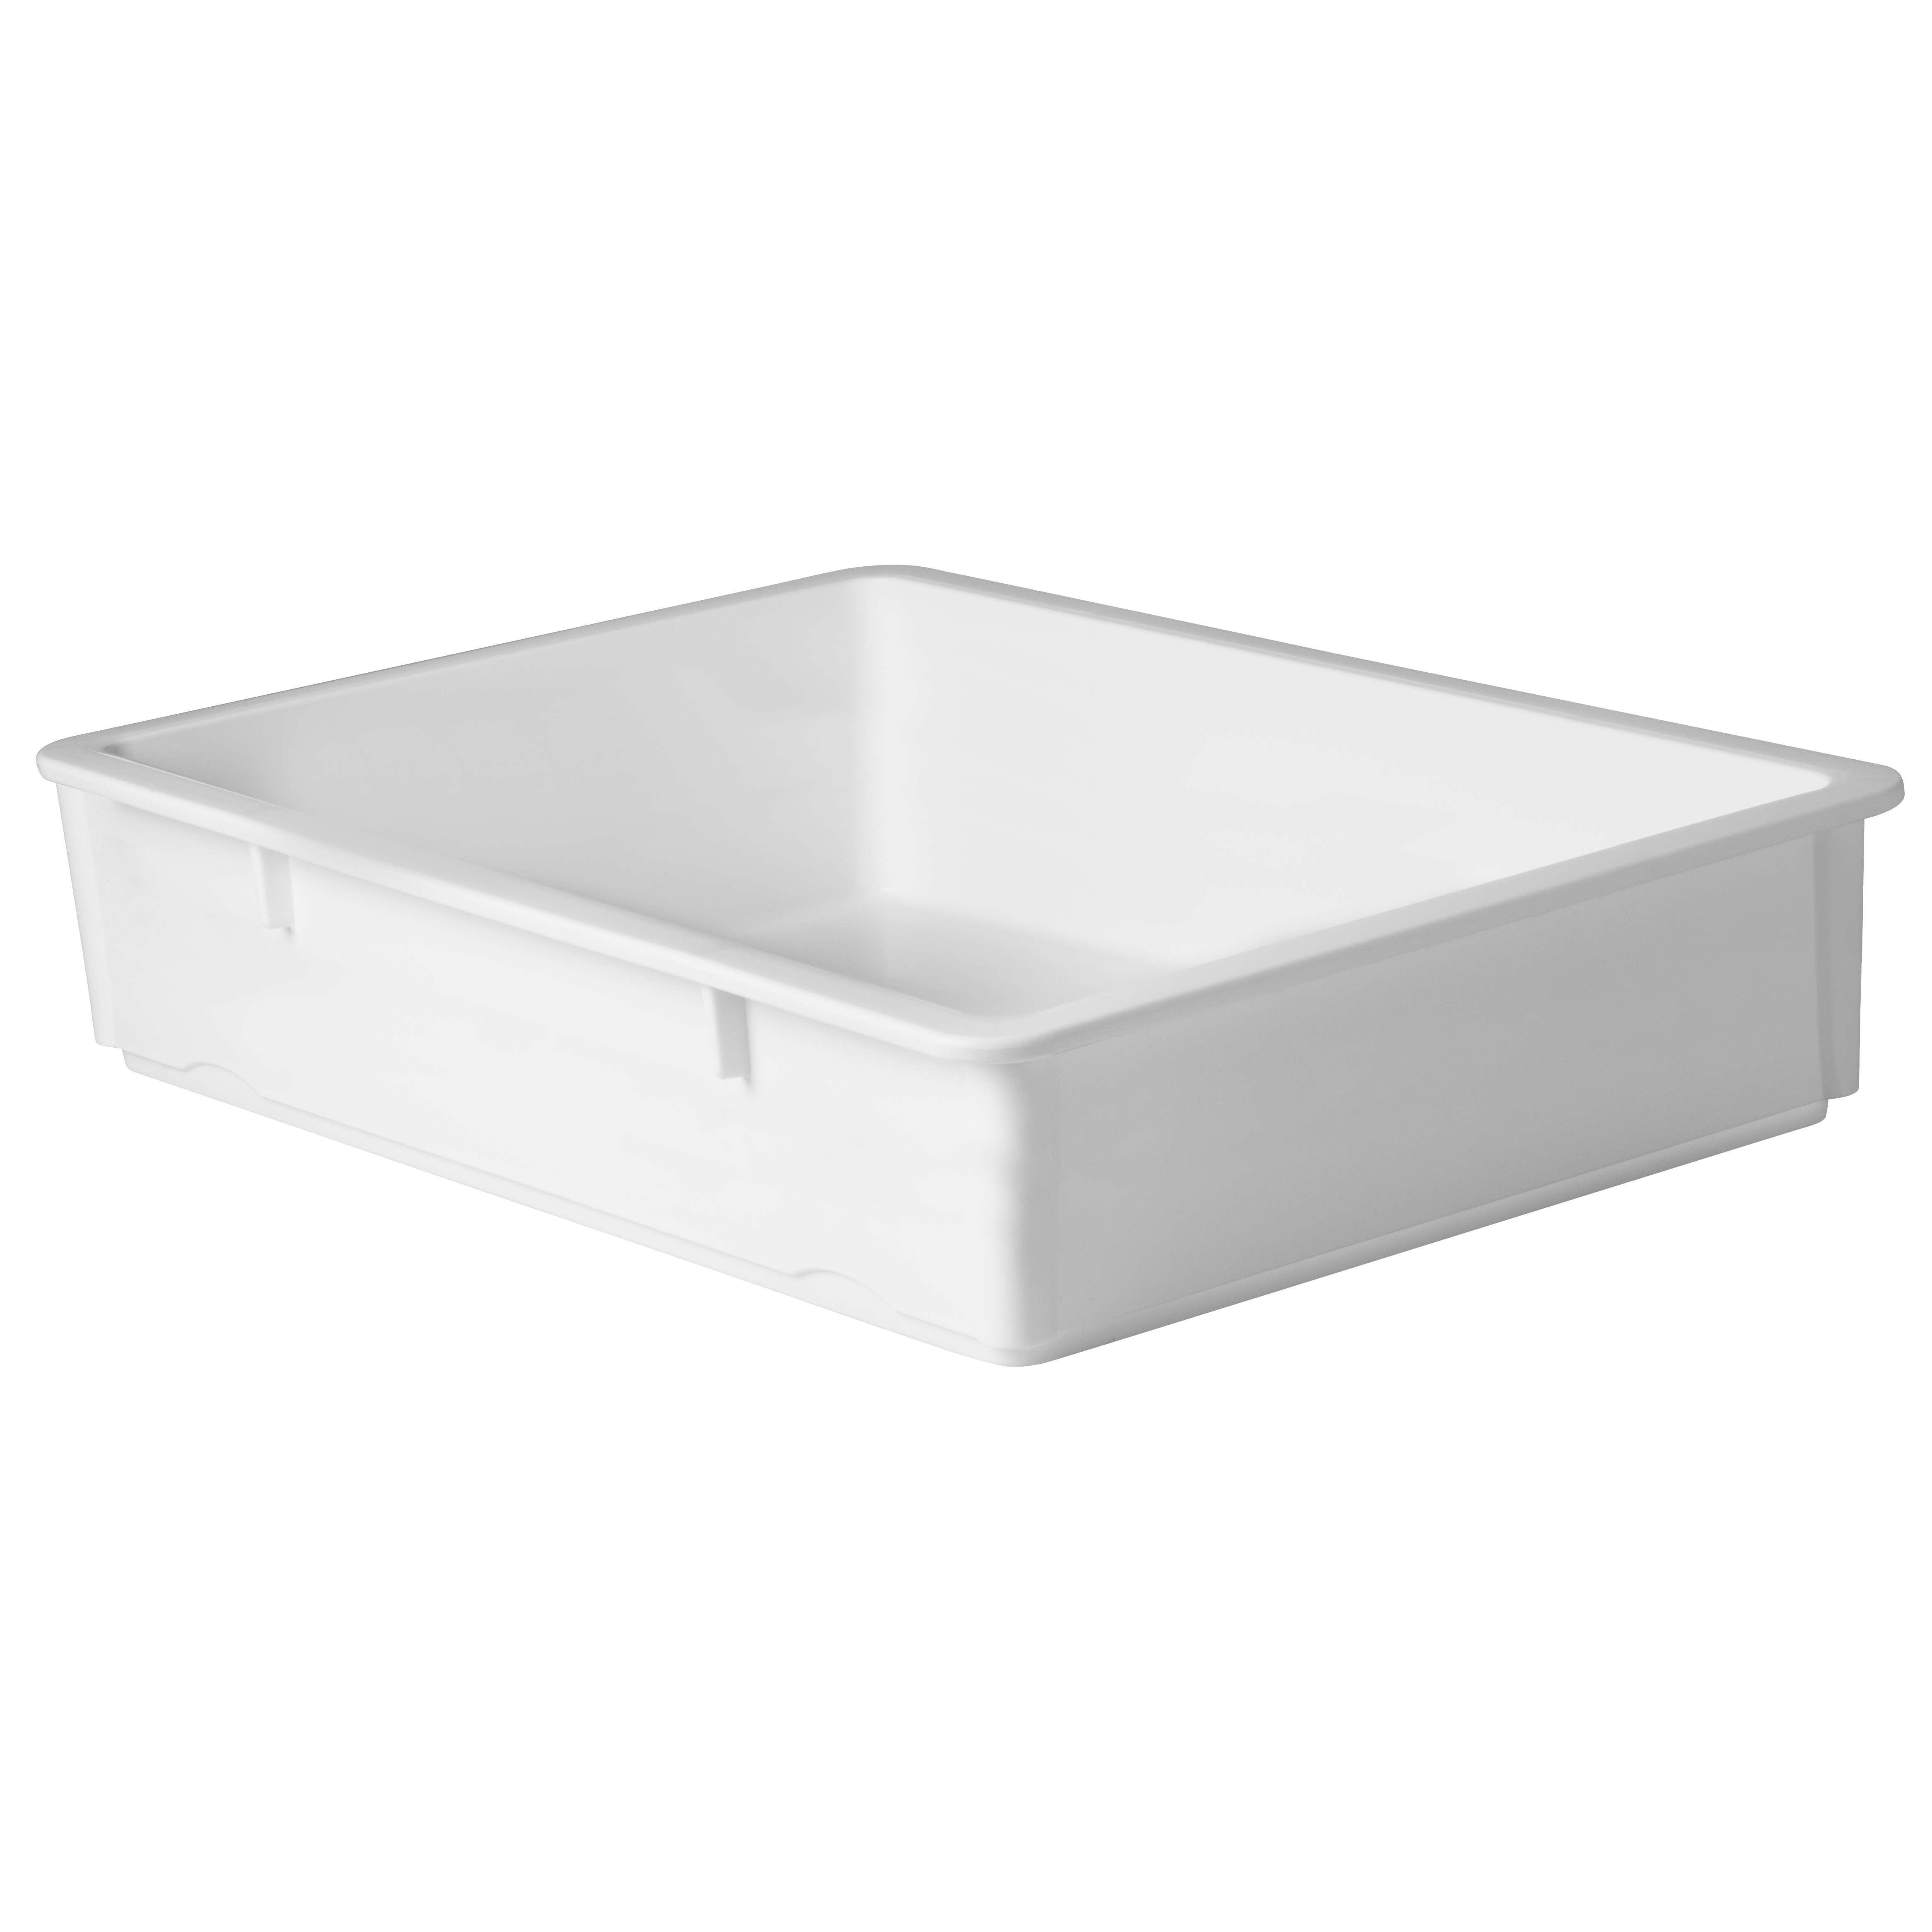 Winco PL-6N dough proofing retarding pans / boxes